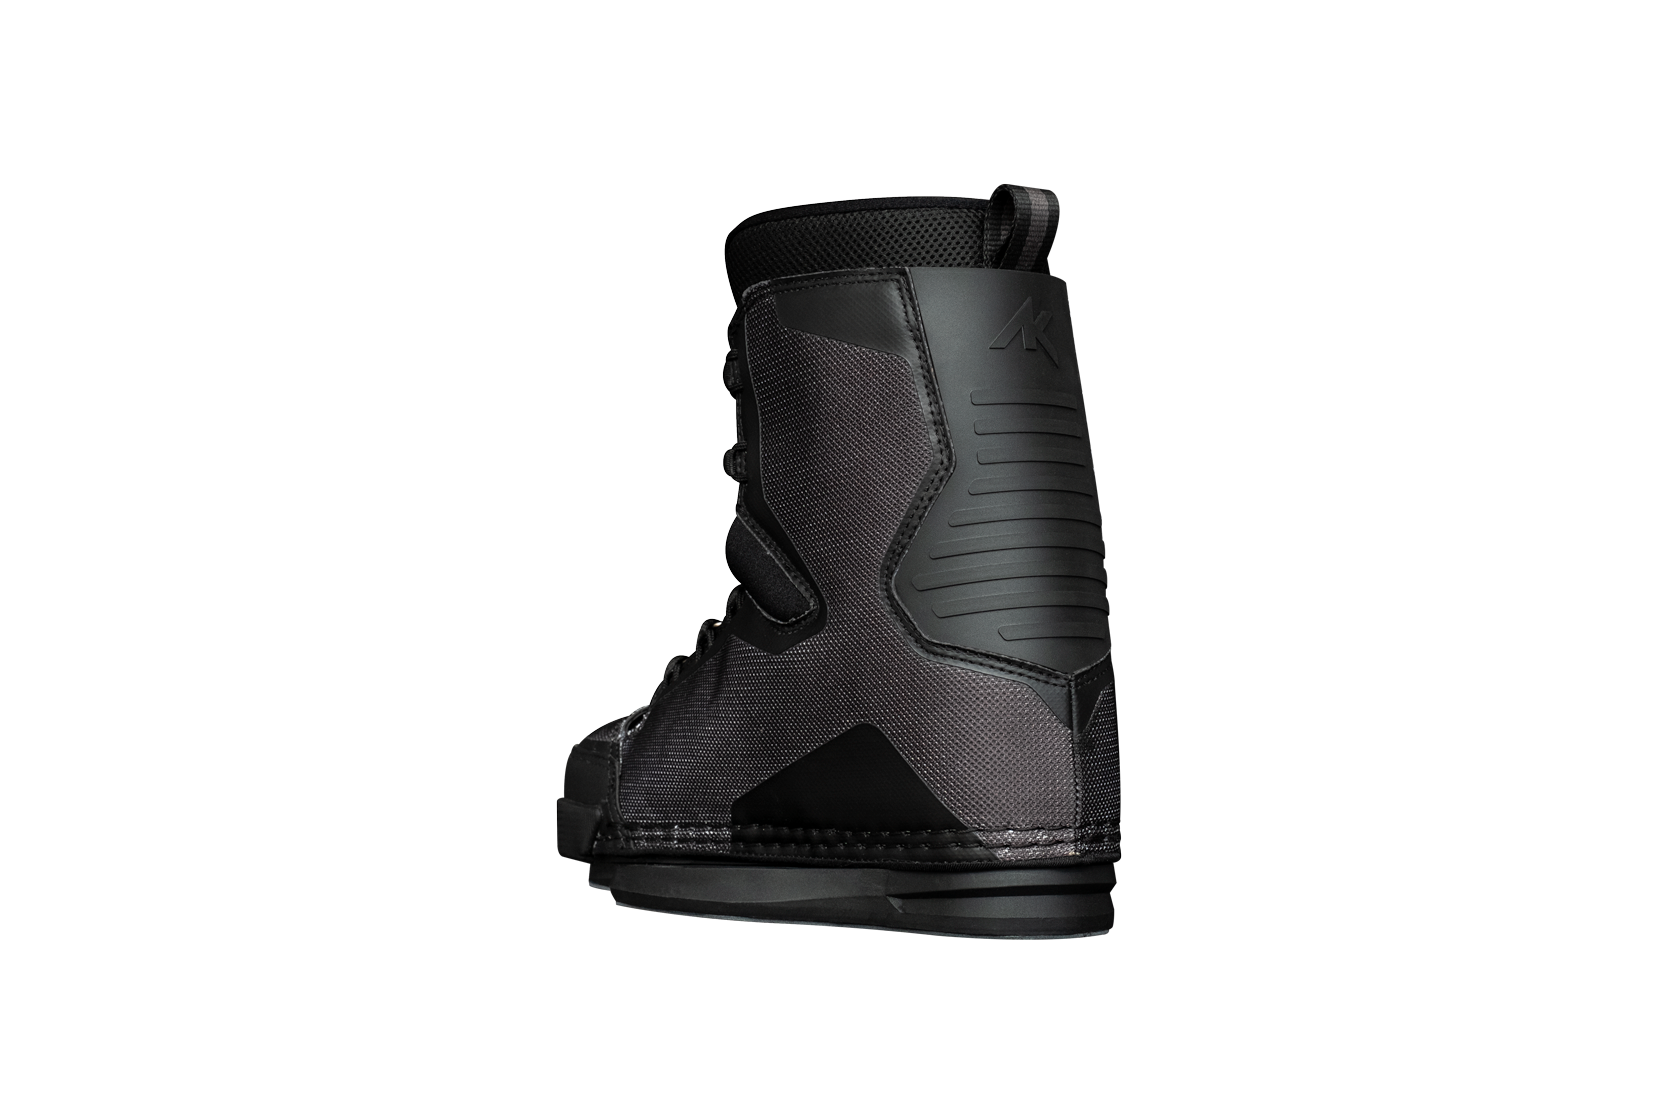 21_AK_Ether Boot_img-05